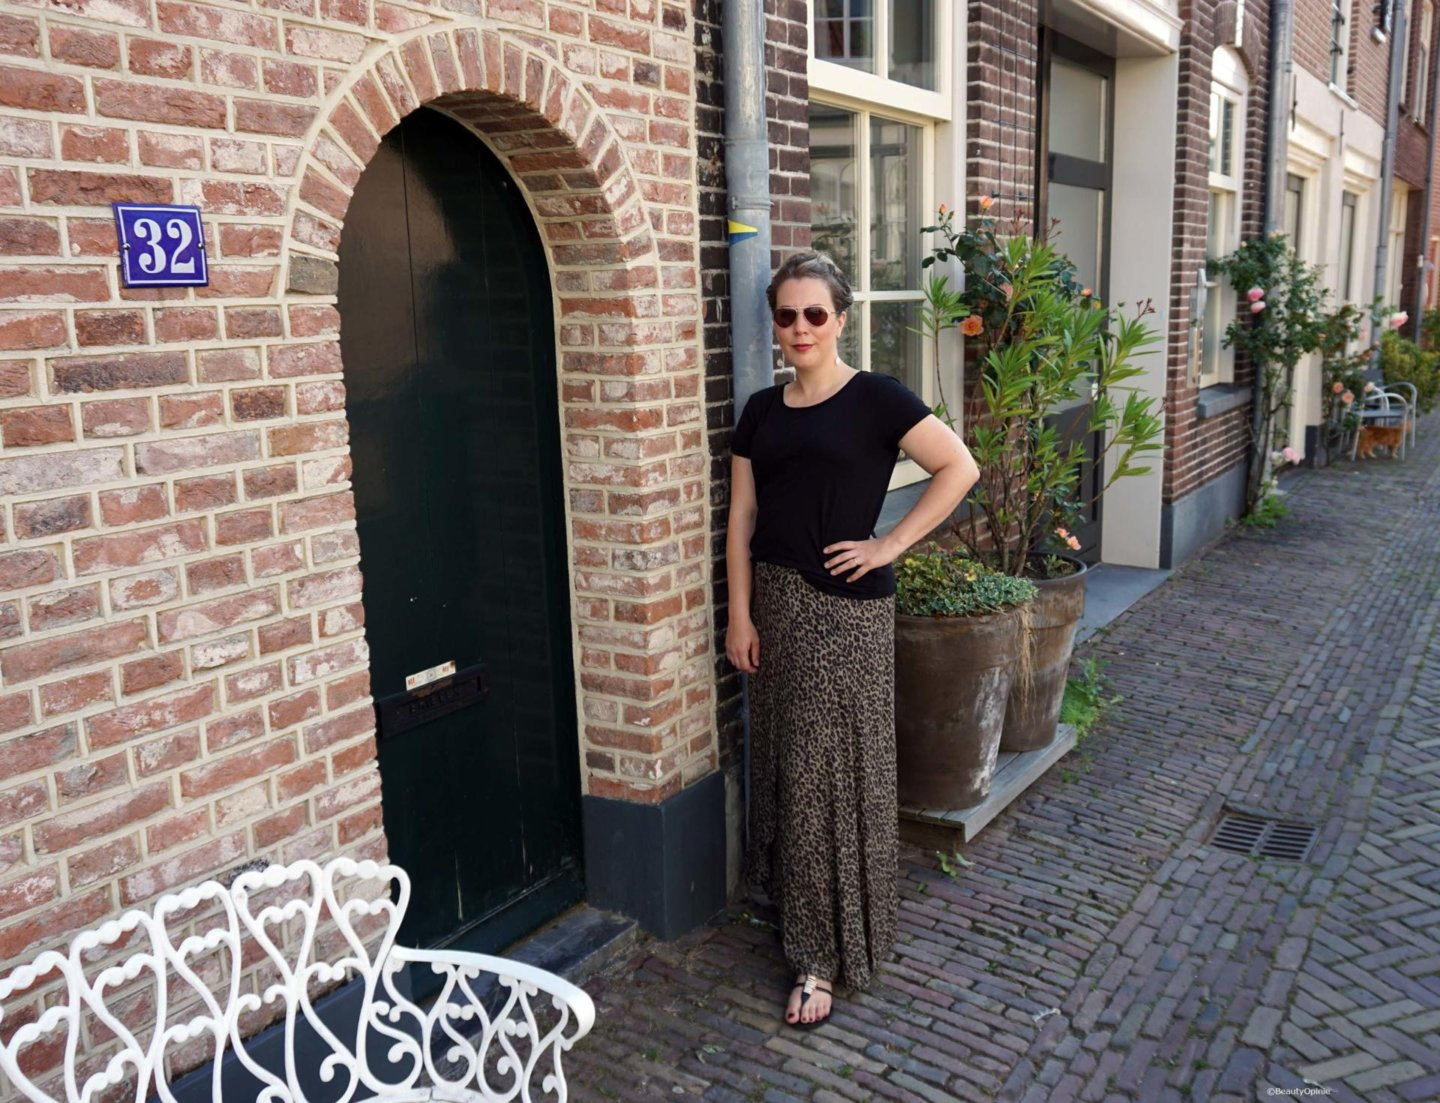 zomerse outfit of the day met rok van costes